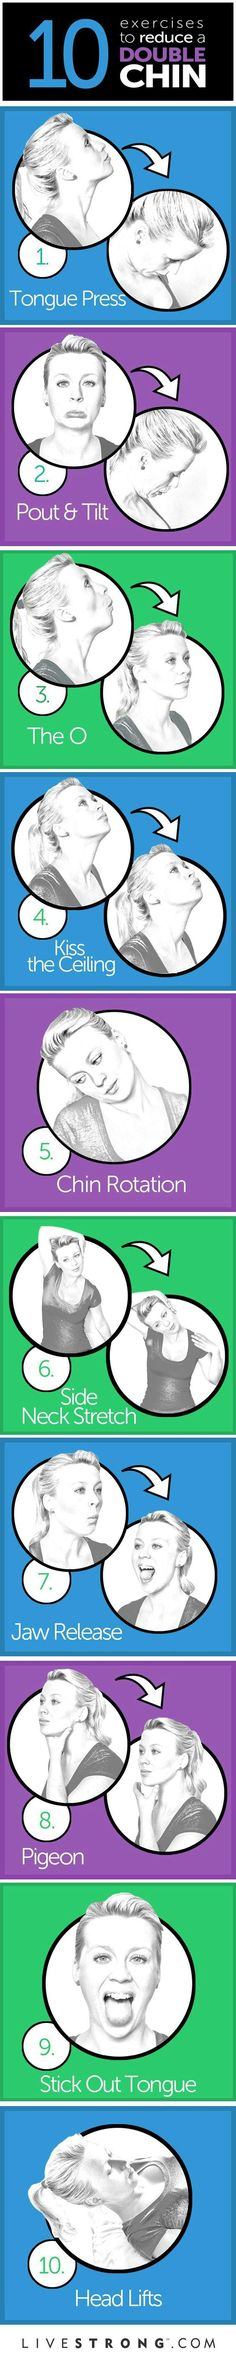 The 10 Best Exercises To Reduce A Double Chin… Have All Your Selfies Sprouted Second Chins Lately? Thankfully, Neck And Chin Toning Can Be Achieved Without Surgery -- All It Takes Is Adding A Few Targeted Exercises To Your Workout…Click On Picture To Learn How To Do These Facial/Neck Exercises Properly…